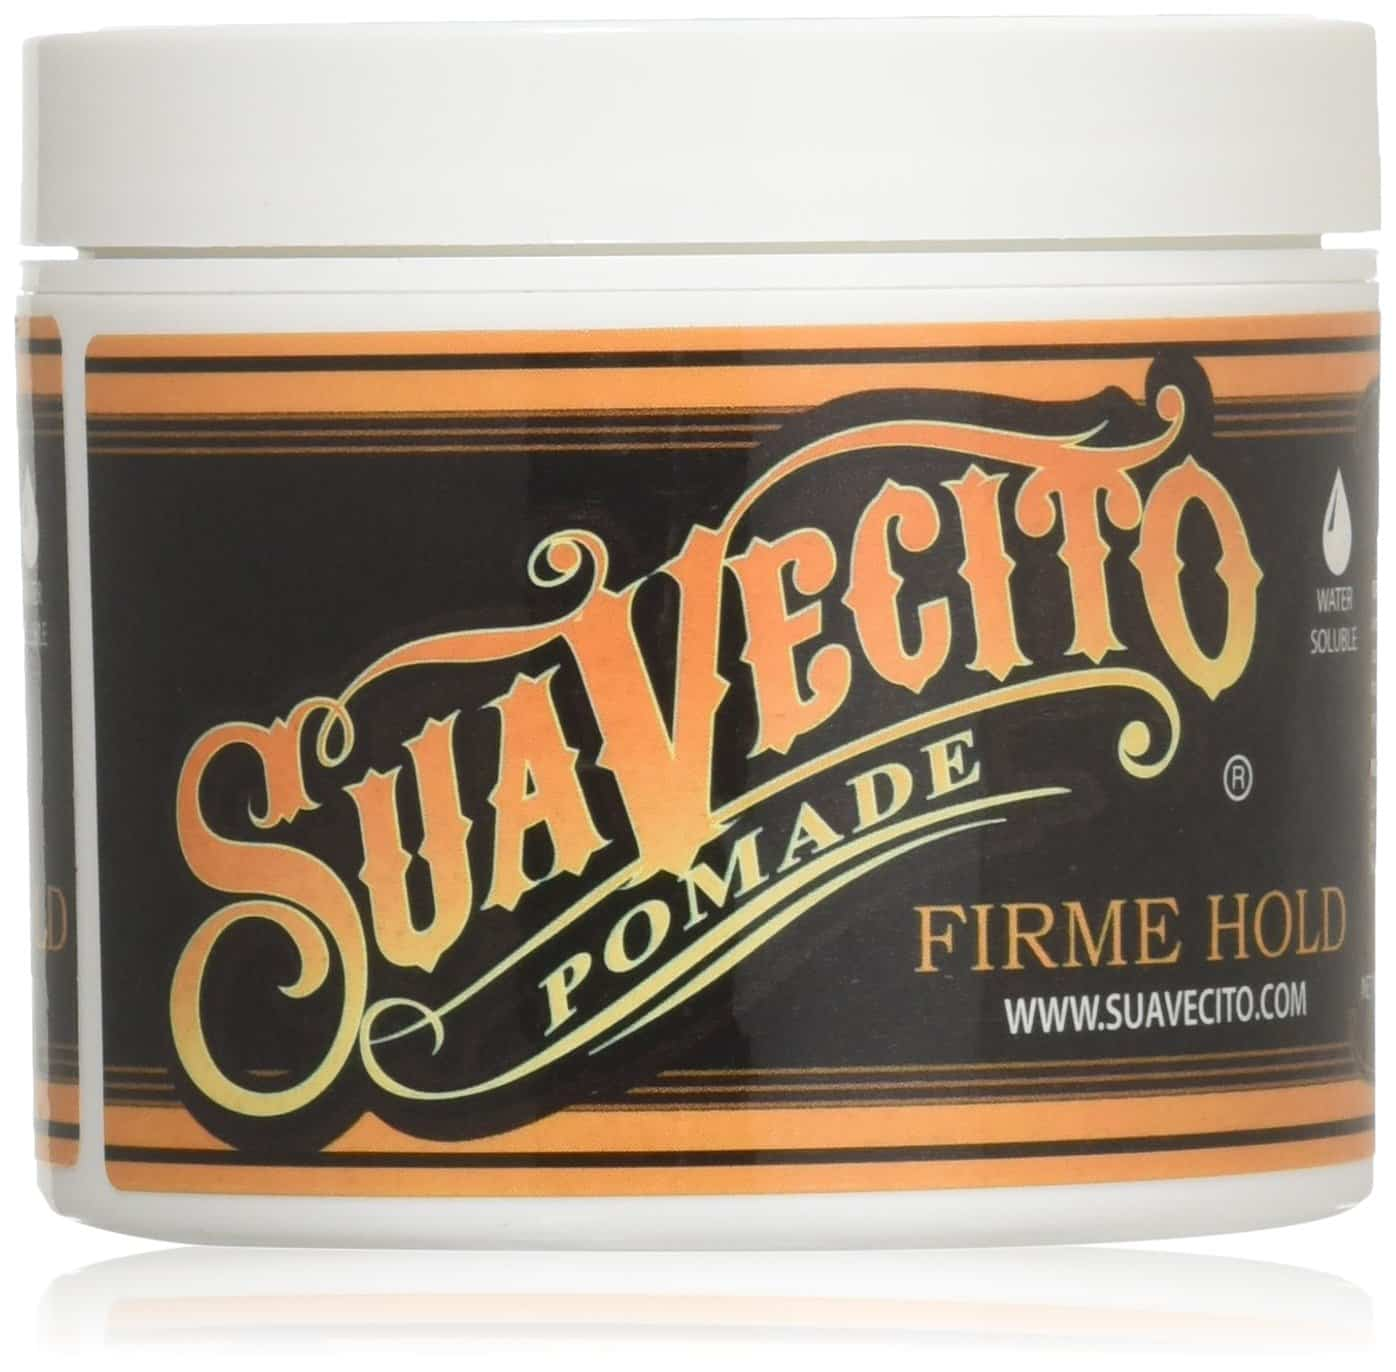 Suavecito Pomade Firme (Strong) Hold